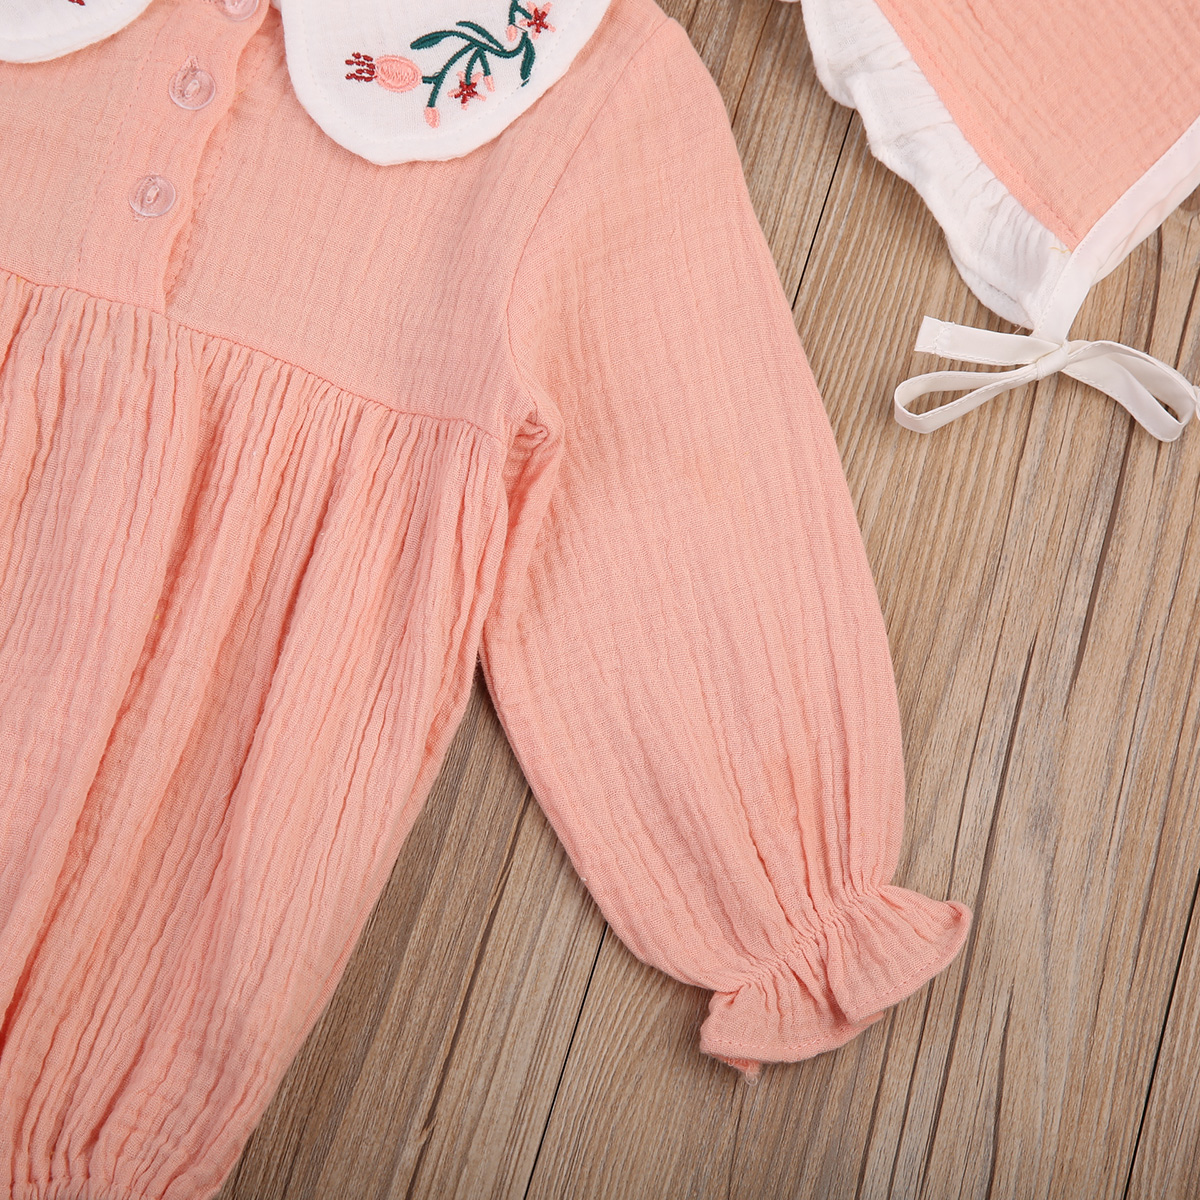 cd762663f8fe Gaono - 2PCS Baby Girls Spring Outfits Long Sleeve Embroidery Peter Pan  Collar Romper Jumpsuit+Hat - Walmart.com